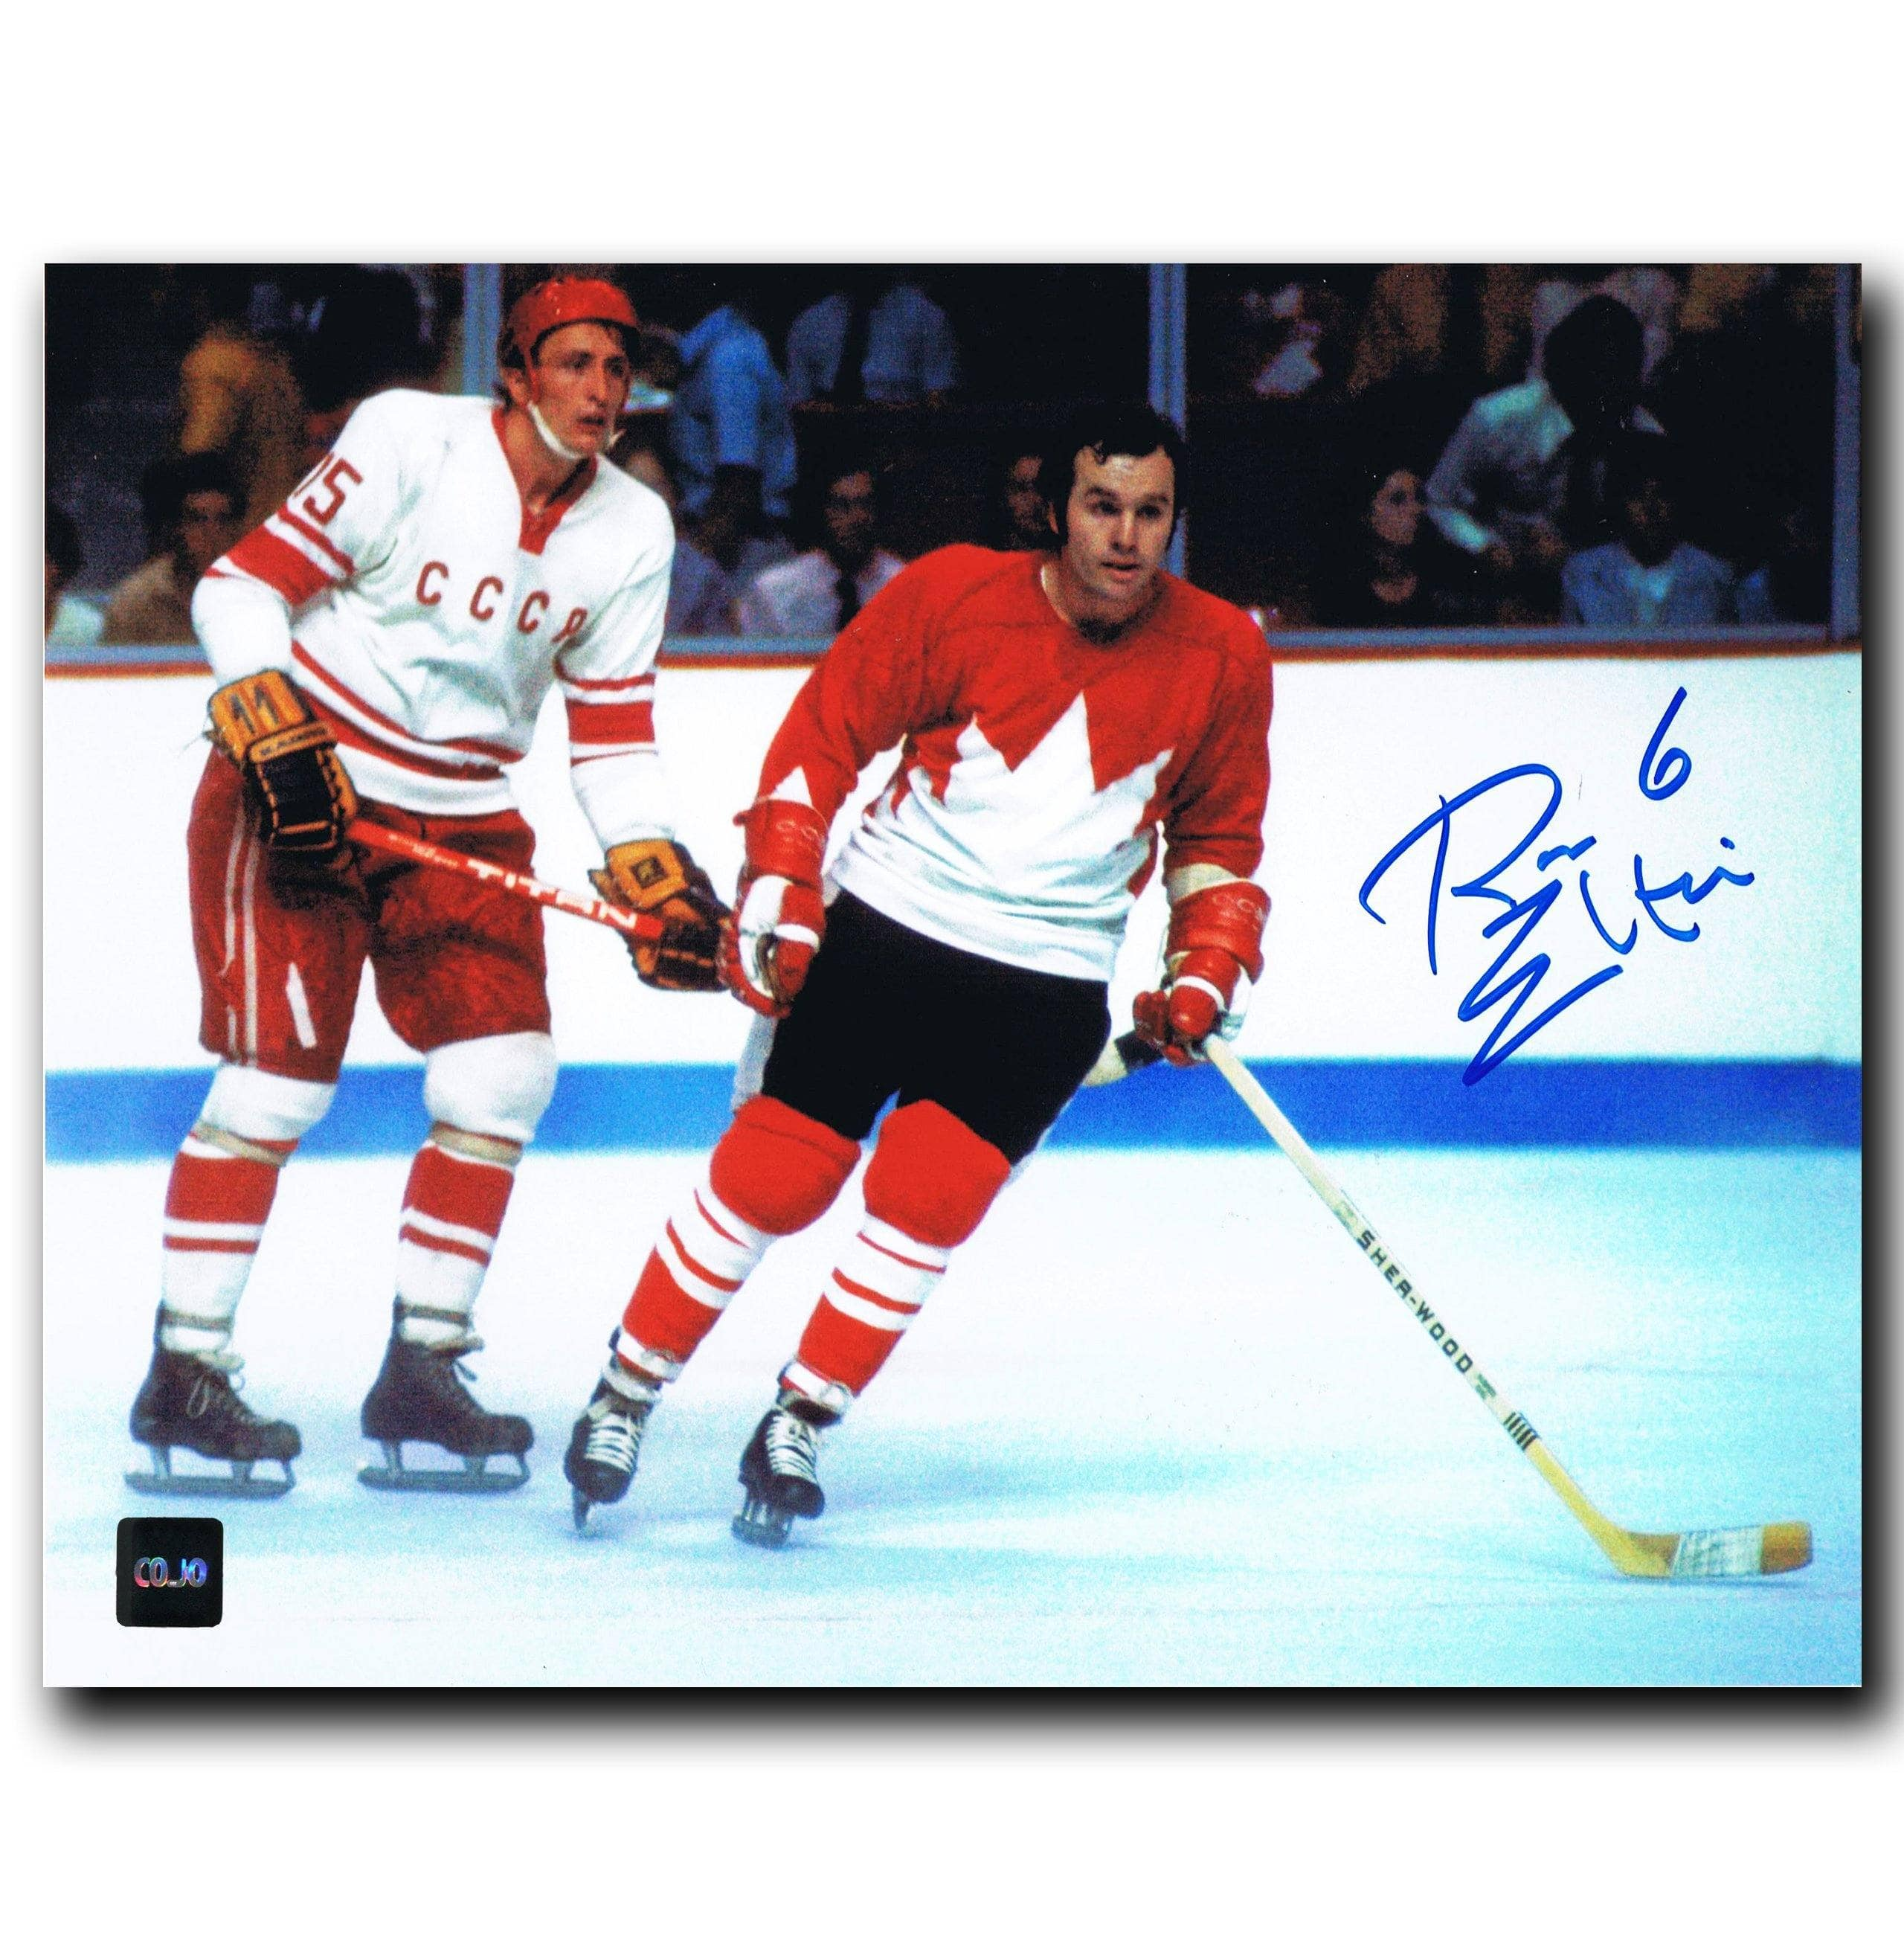 brand new dcd26 c13ee Ron Ellis Toronto Maple Leafs Autographed Team Canada 8x10 Photo - CoJo  Sport Collectables Inc.